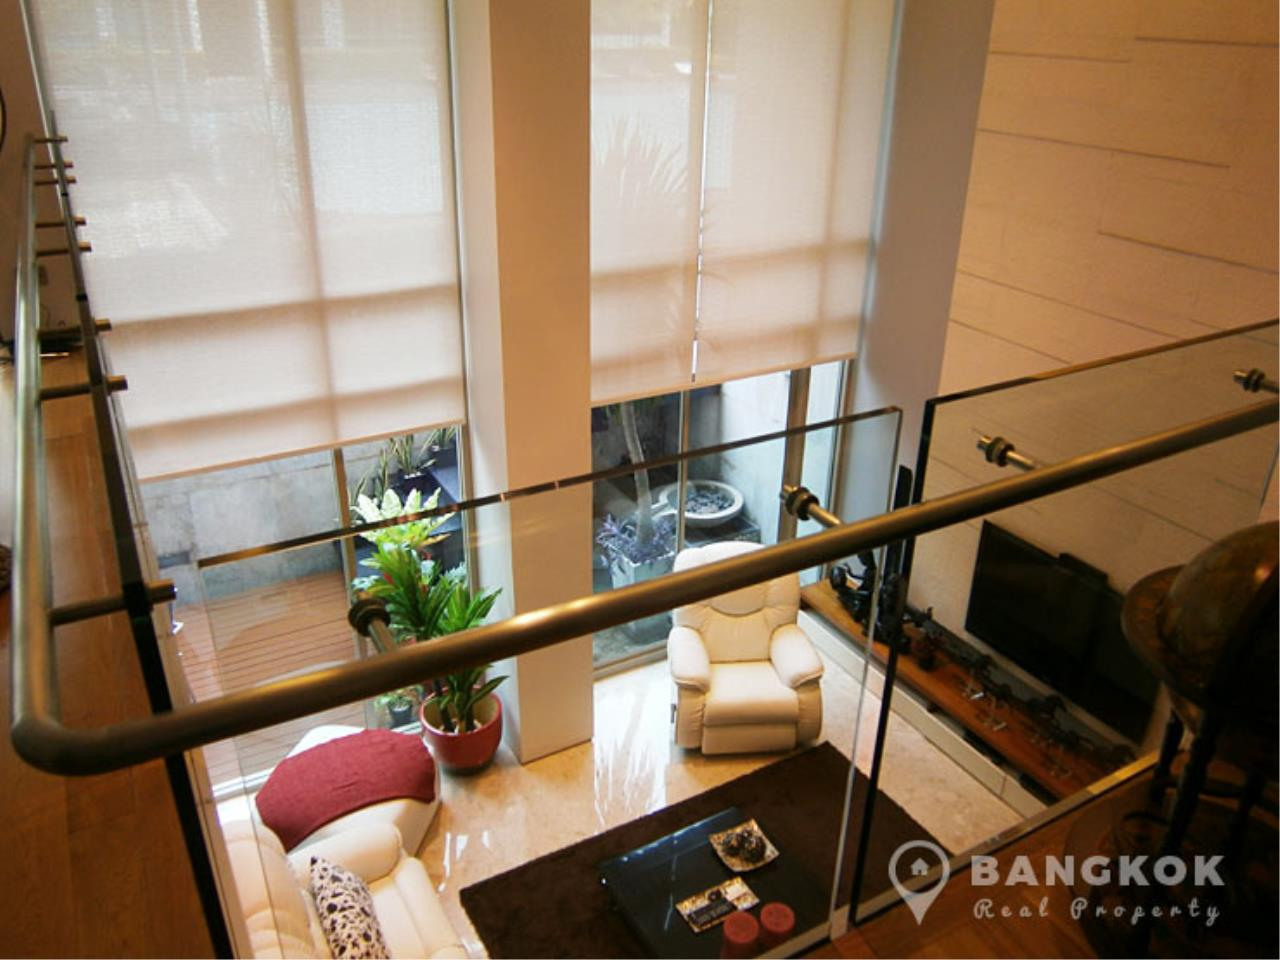 Bangkok Real Property Agency's Ficus Lane | A Fabulous Spacious 3 Bed 4 Bath Duplex near BTS 14